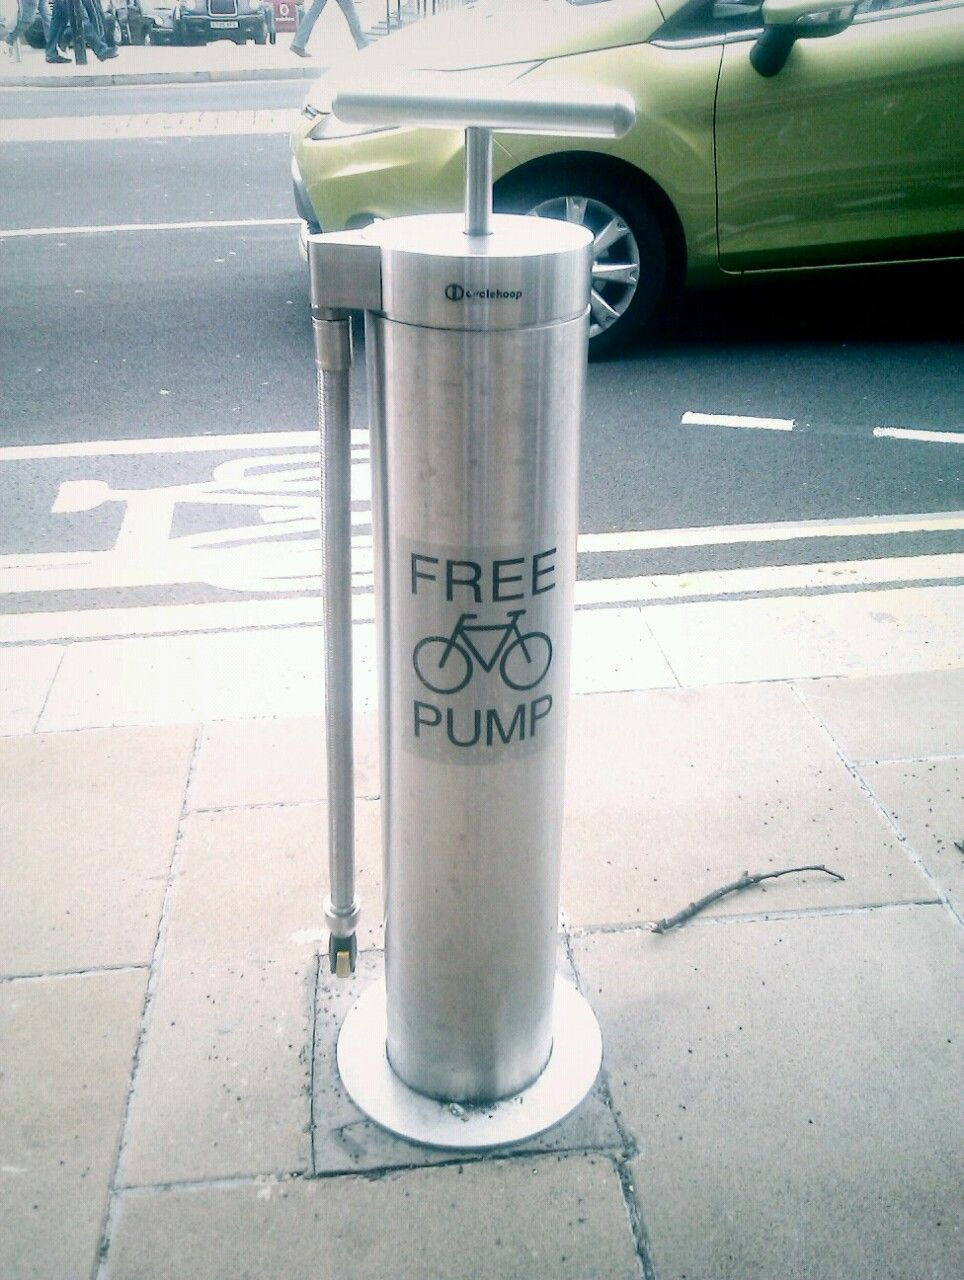 Public Bike Pump Bike Pump Bike Ride Bicycle